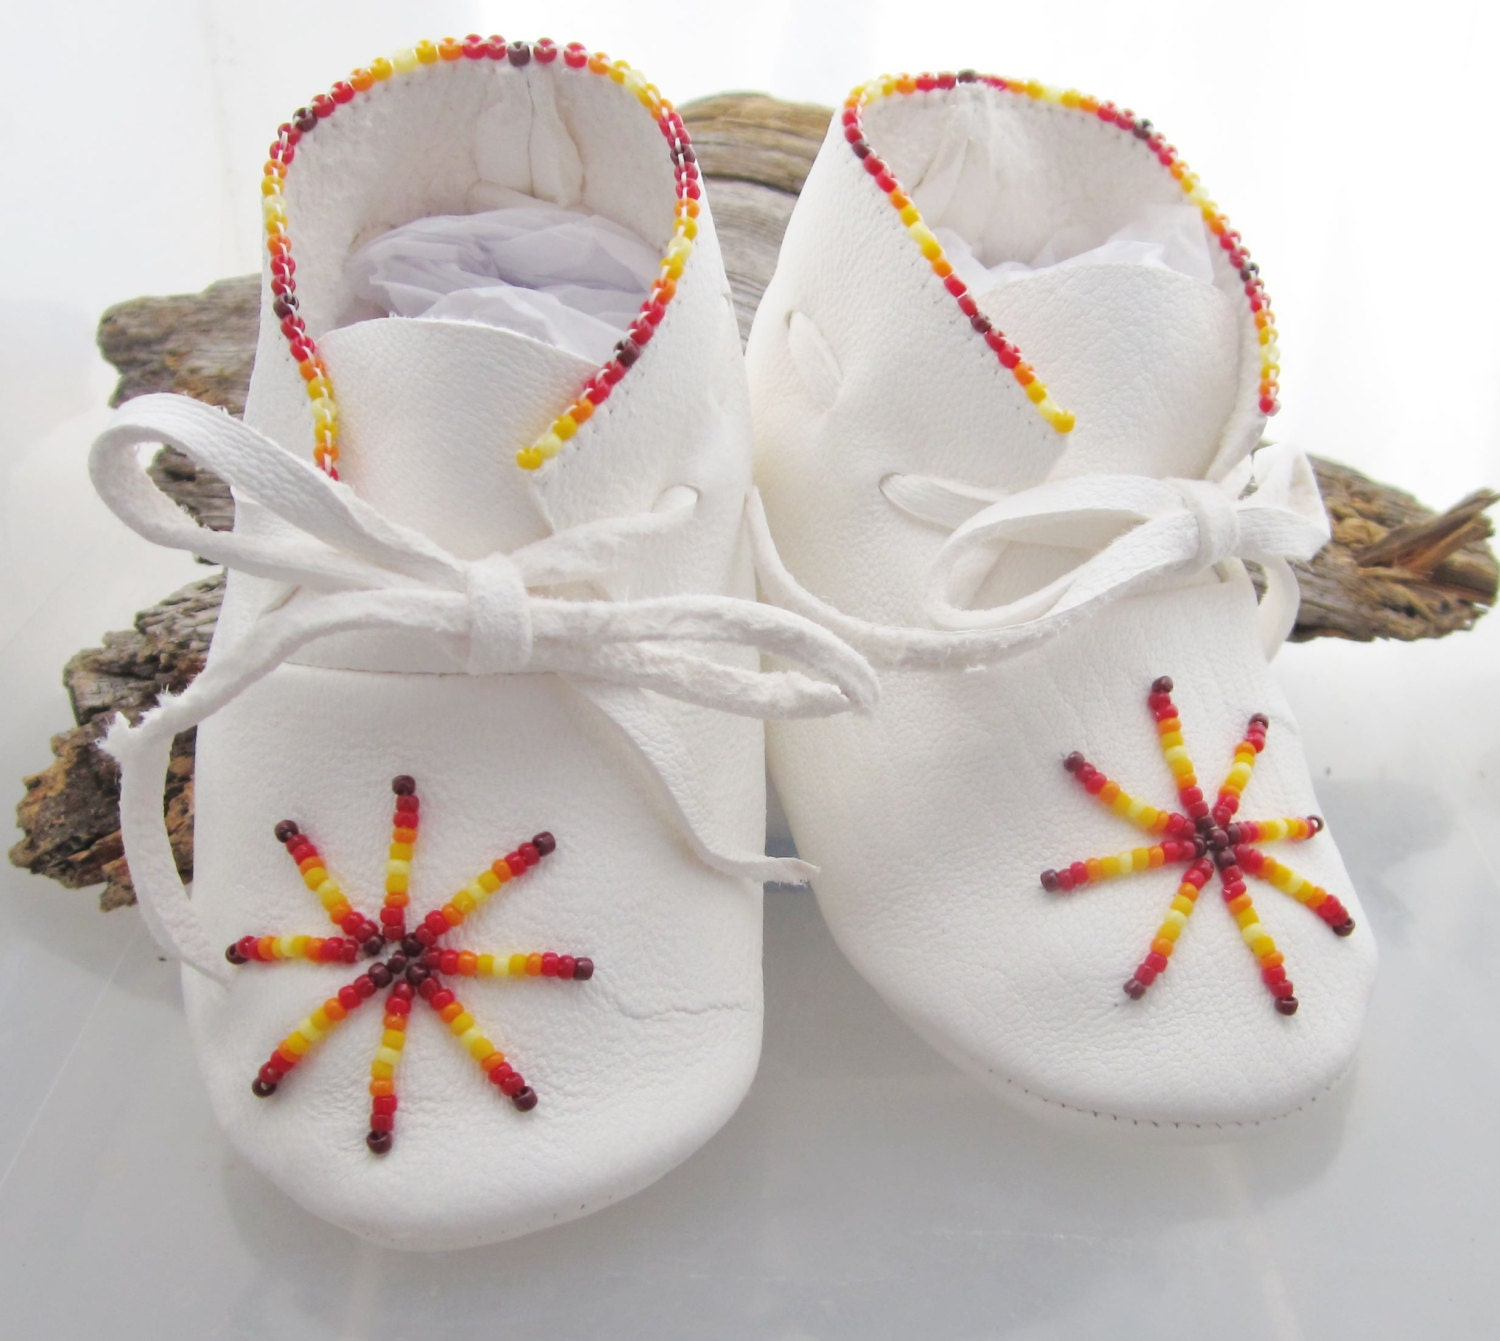 Uni shoes in White Leather Beaded Rainbow ColorsNative